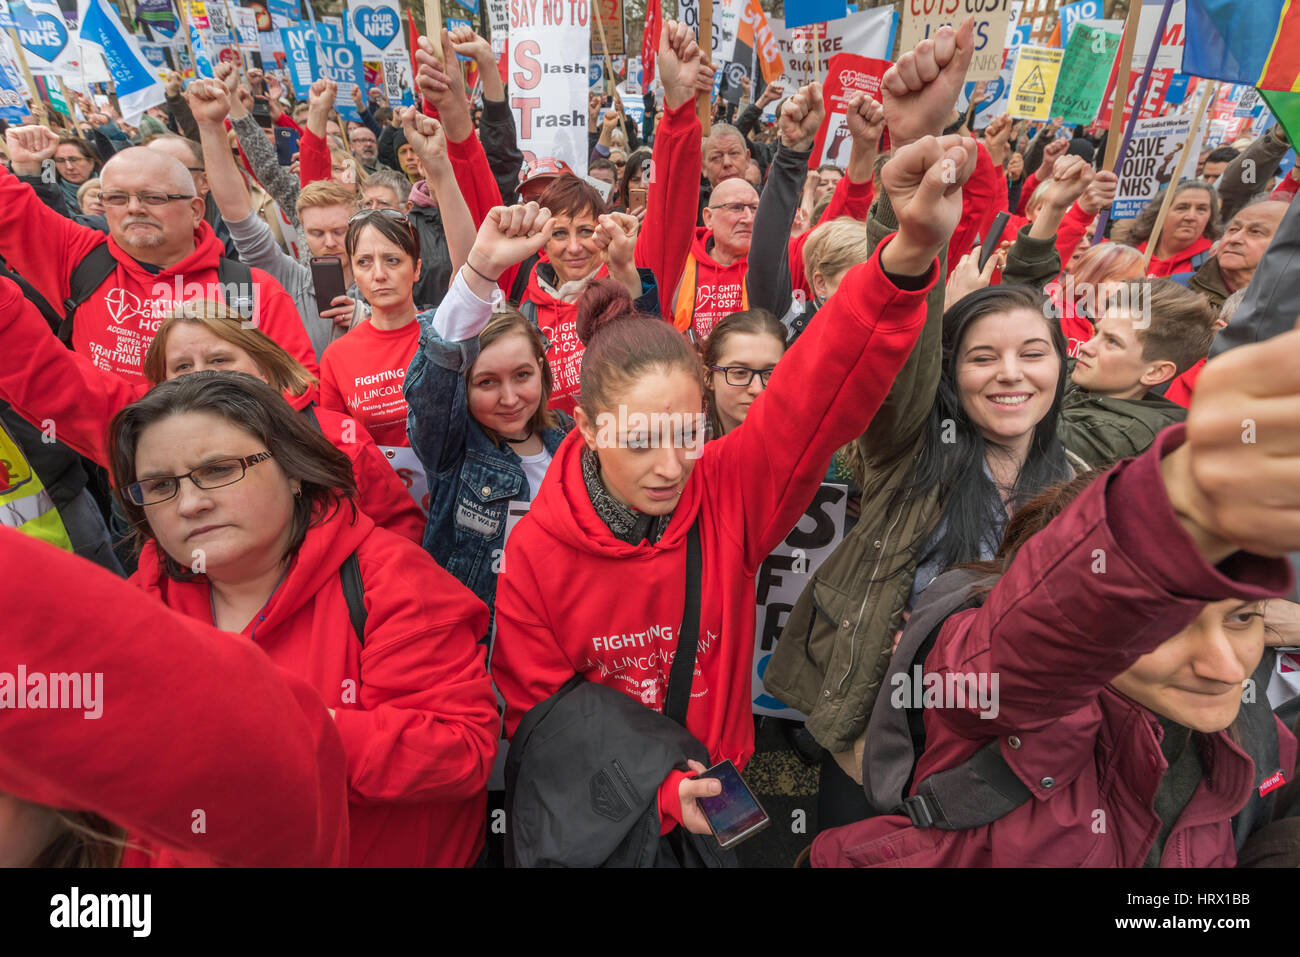 London, UK. 4th March 2017. The crowd raises fists to respond to a speaker at the rally before thousands march though - Stock Image